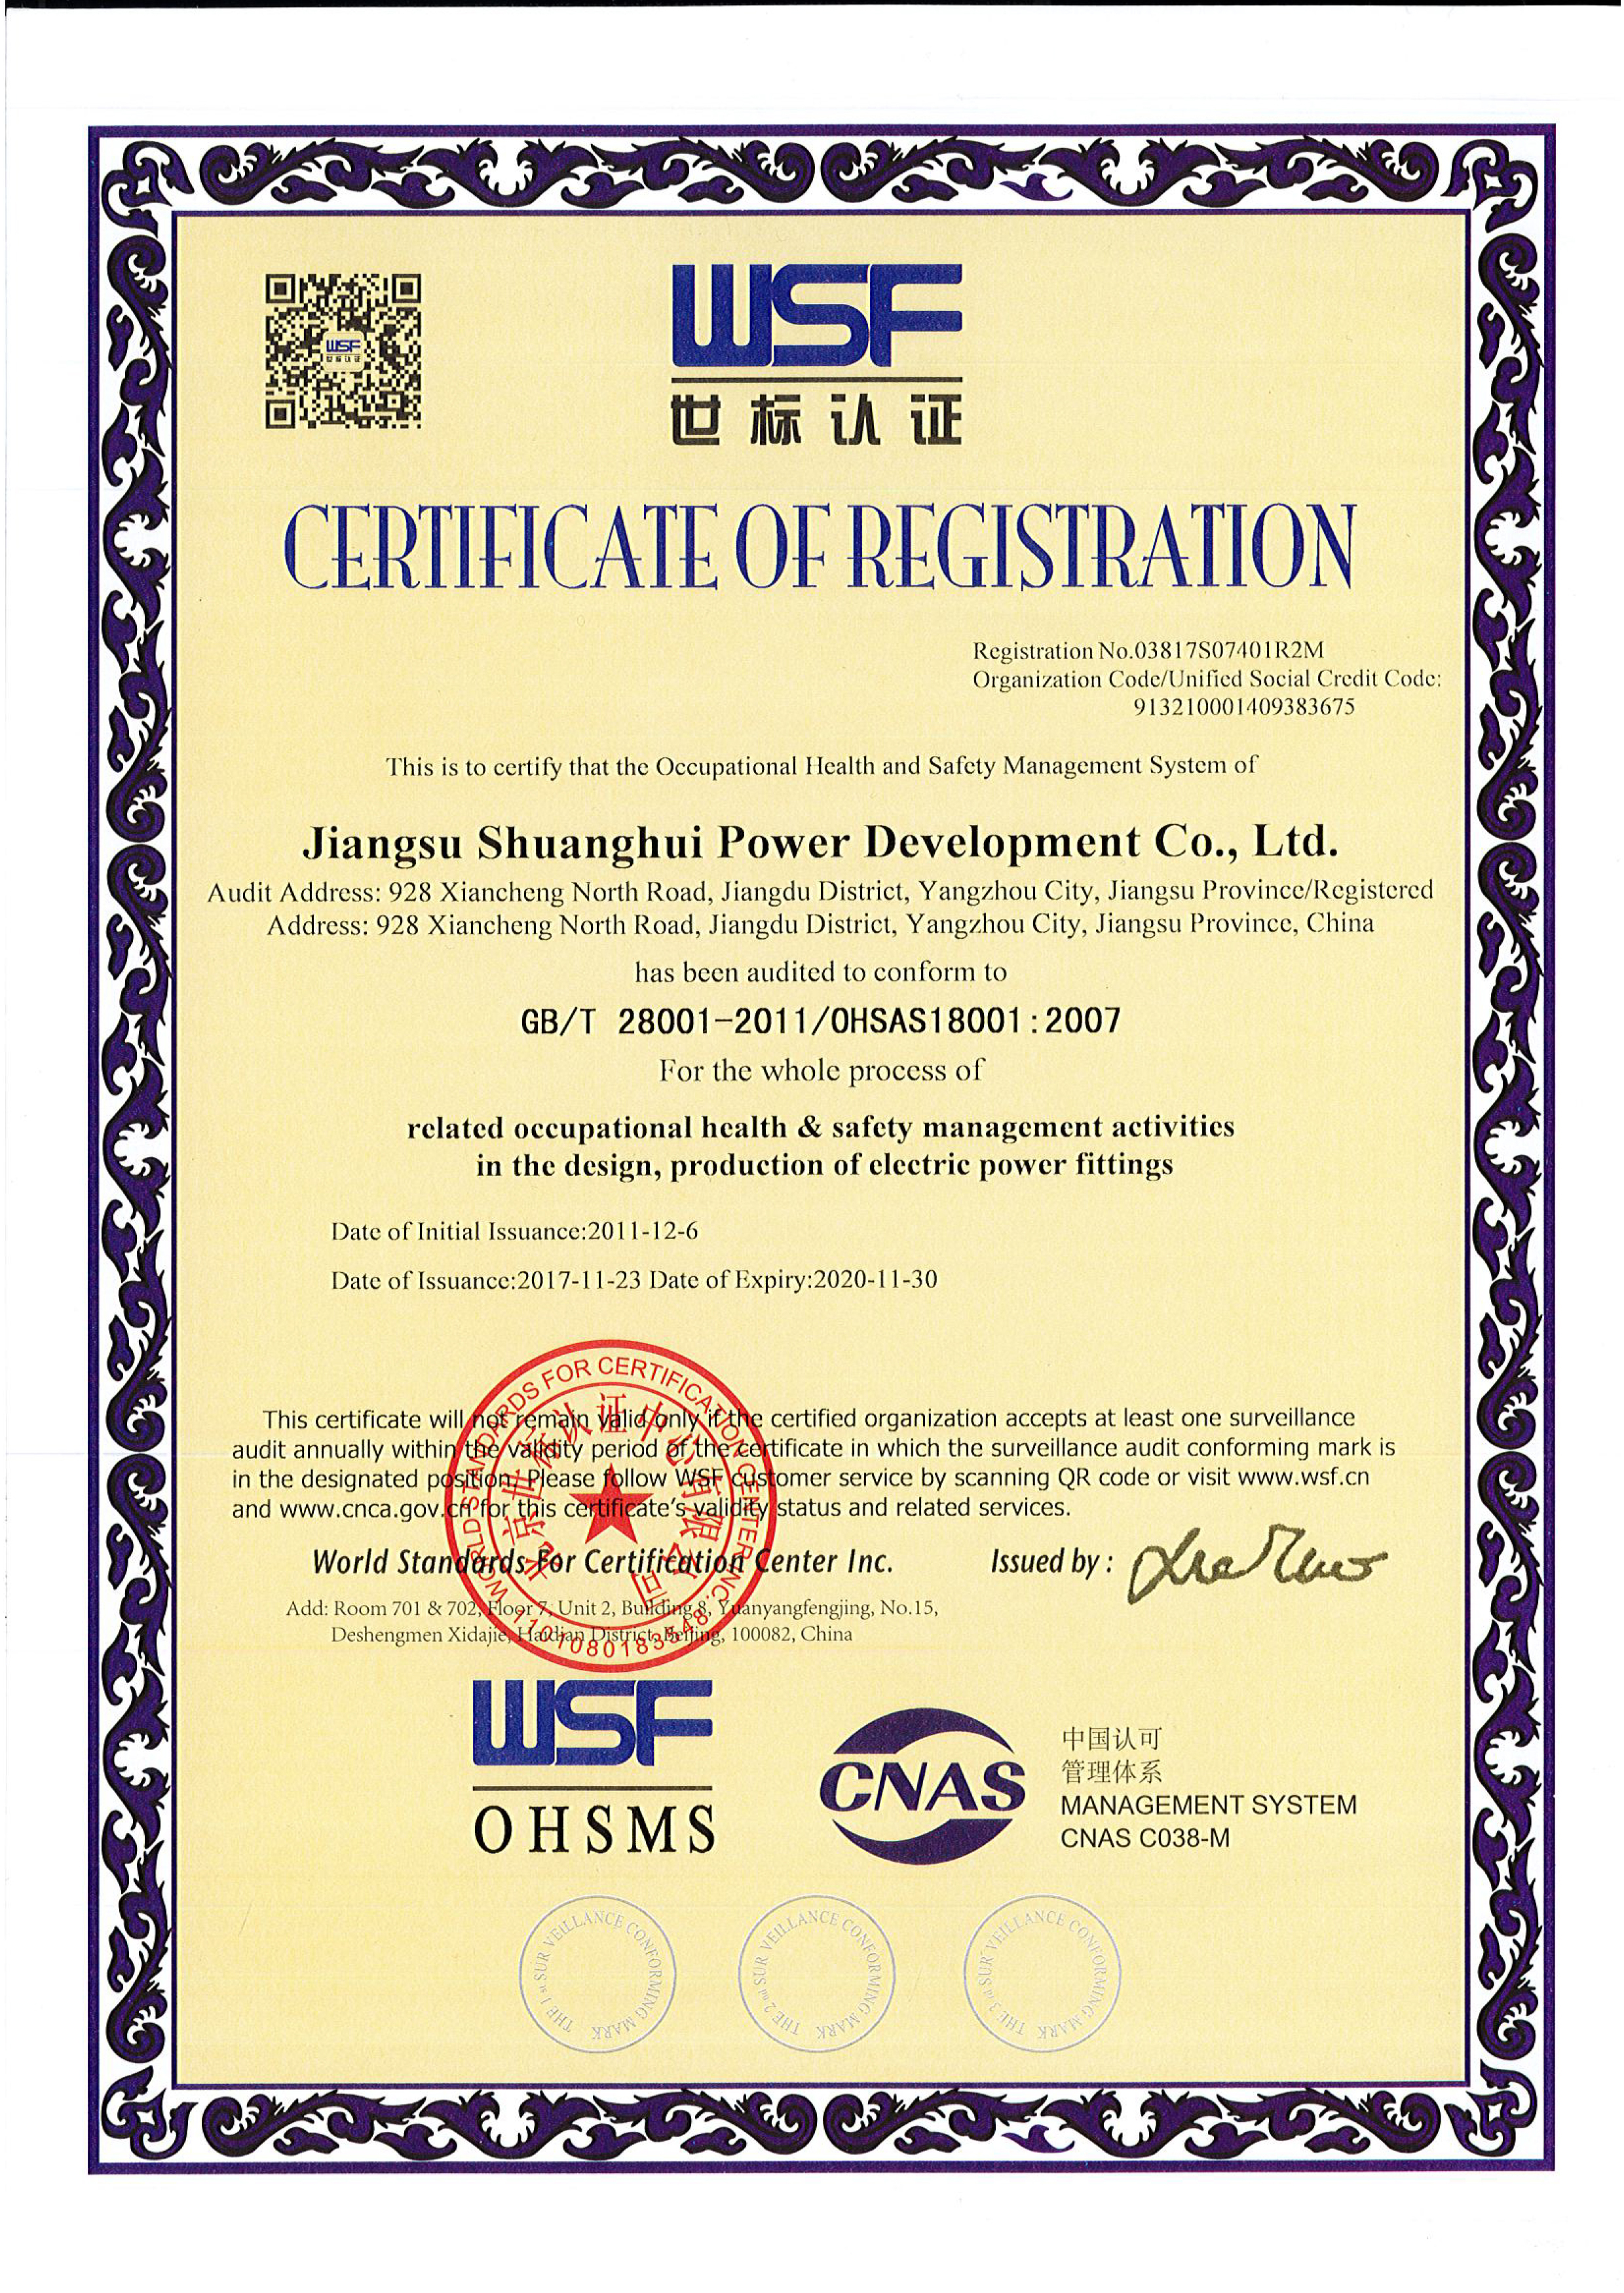 iso-certification-3